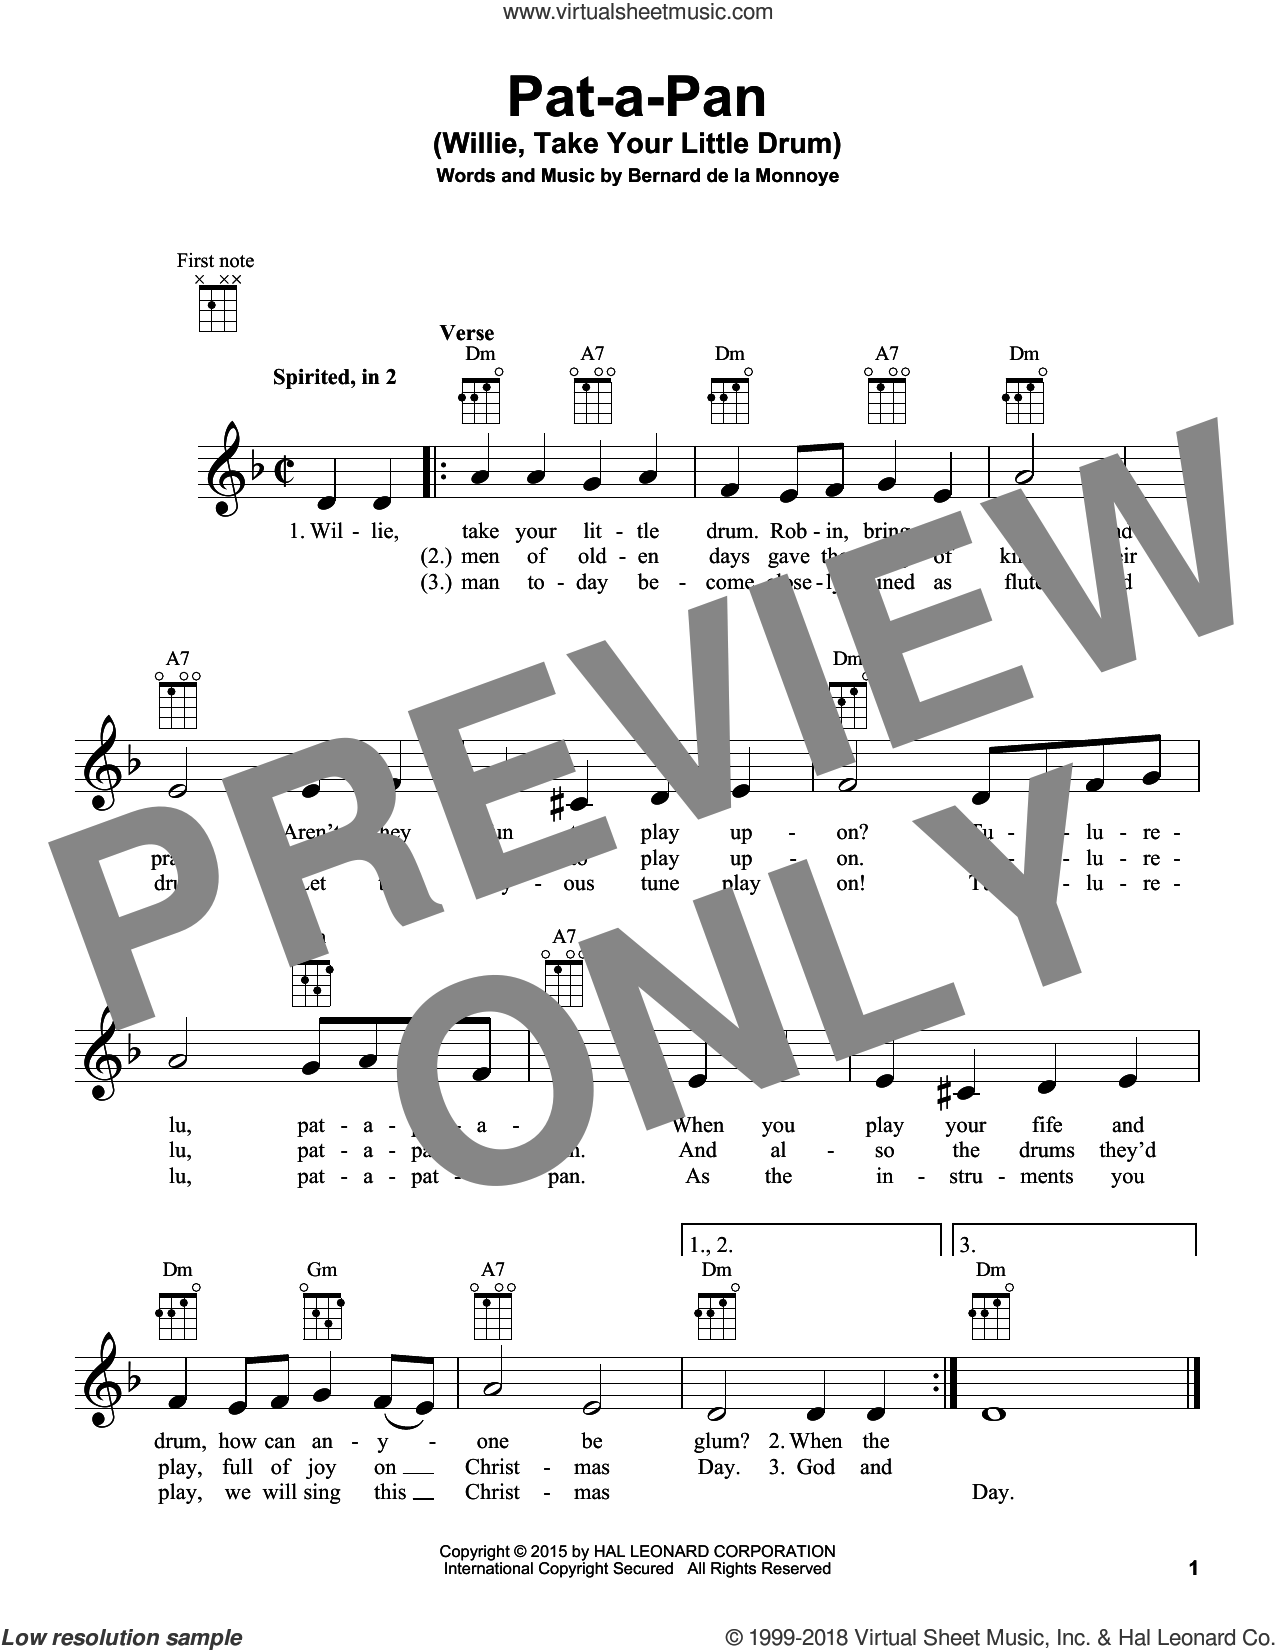 Pat-A-Pan (Willie, Take Your Little Drum) sheet music for ukulele by Bernard de la Monnoye, intermediate skill level